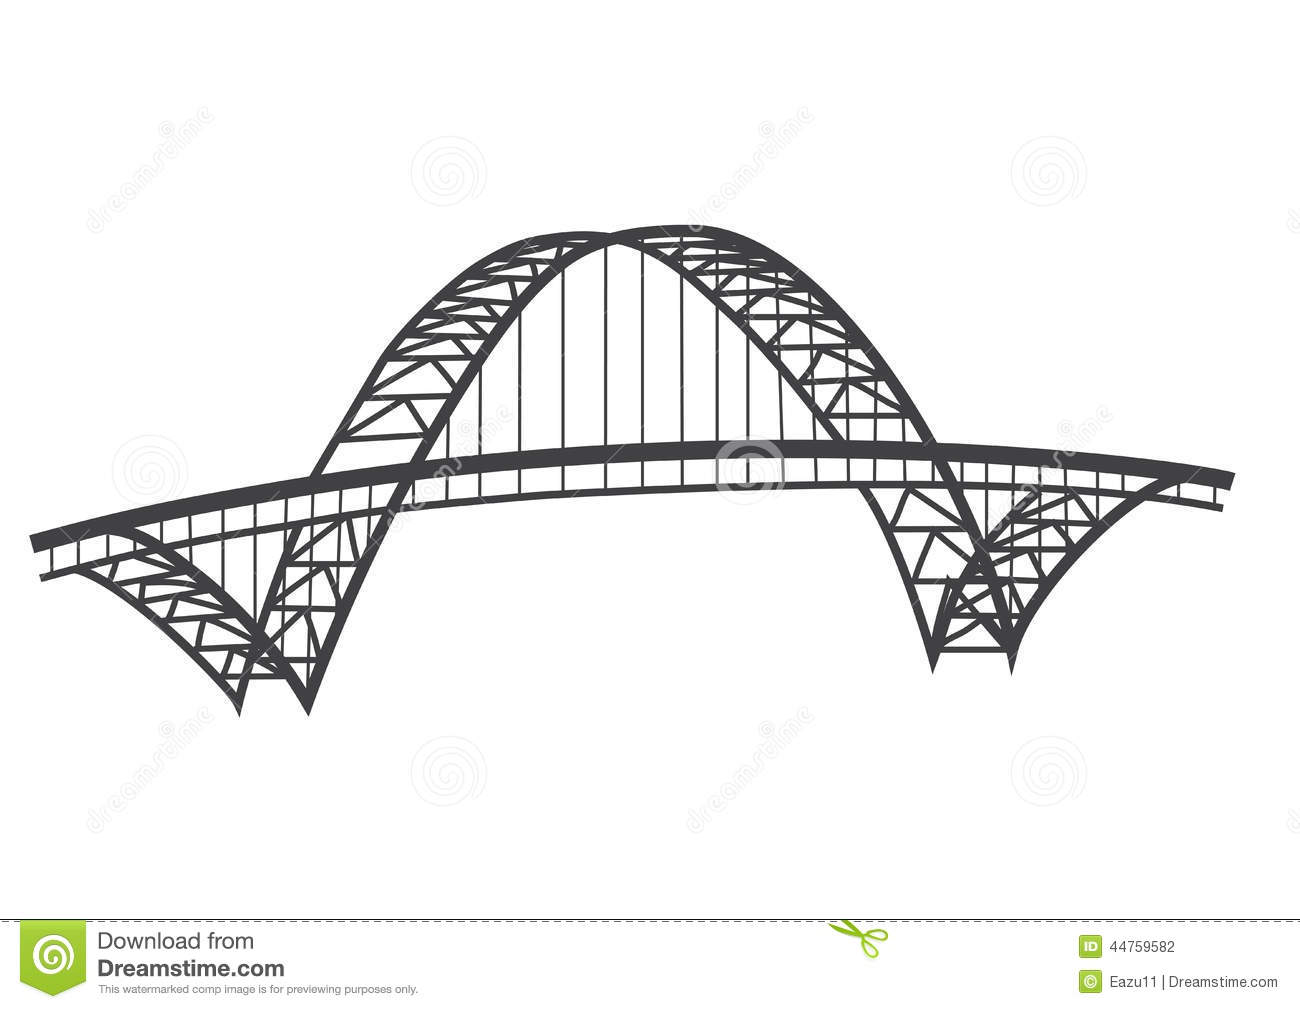 Dessin De Pont De Fremont Illustration Stock Illustration